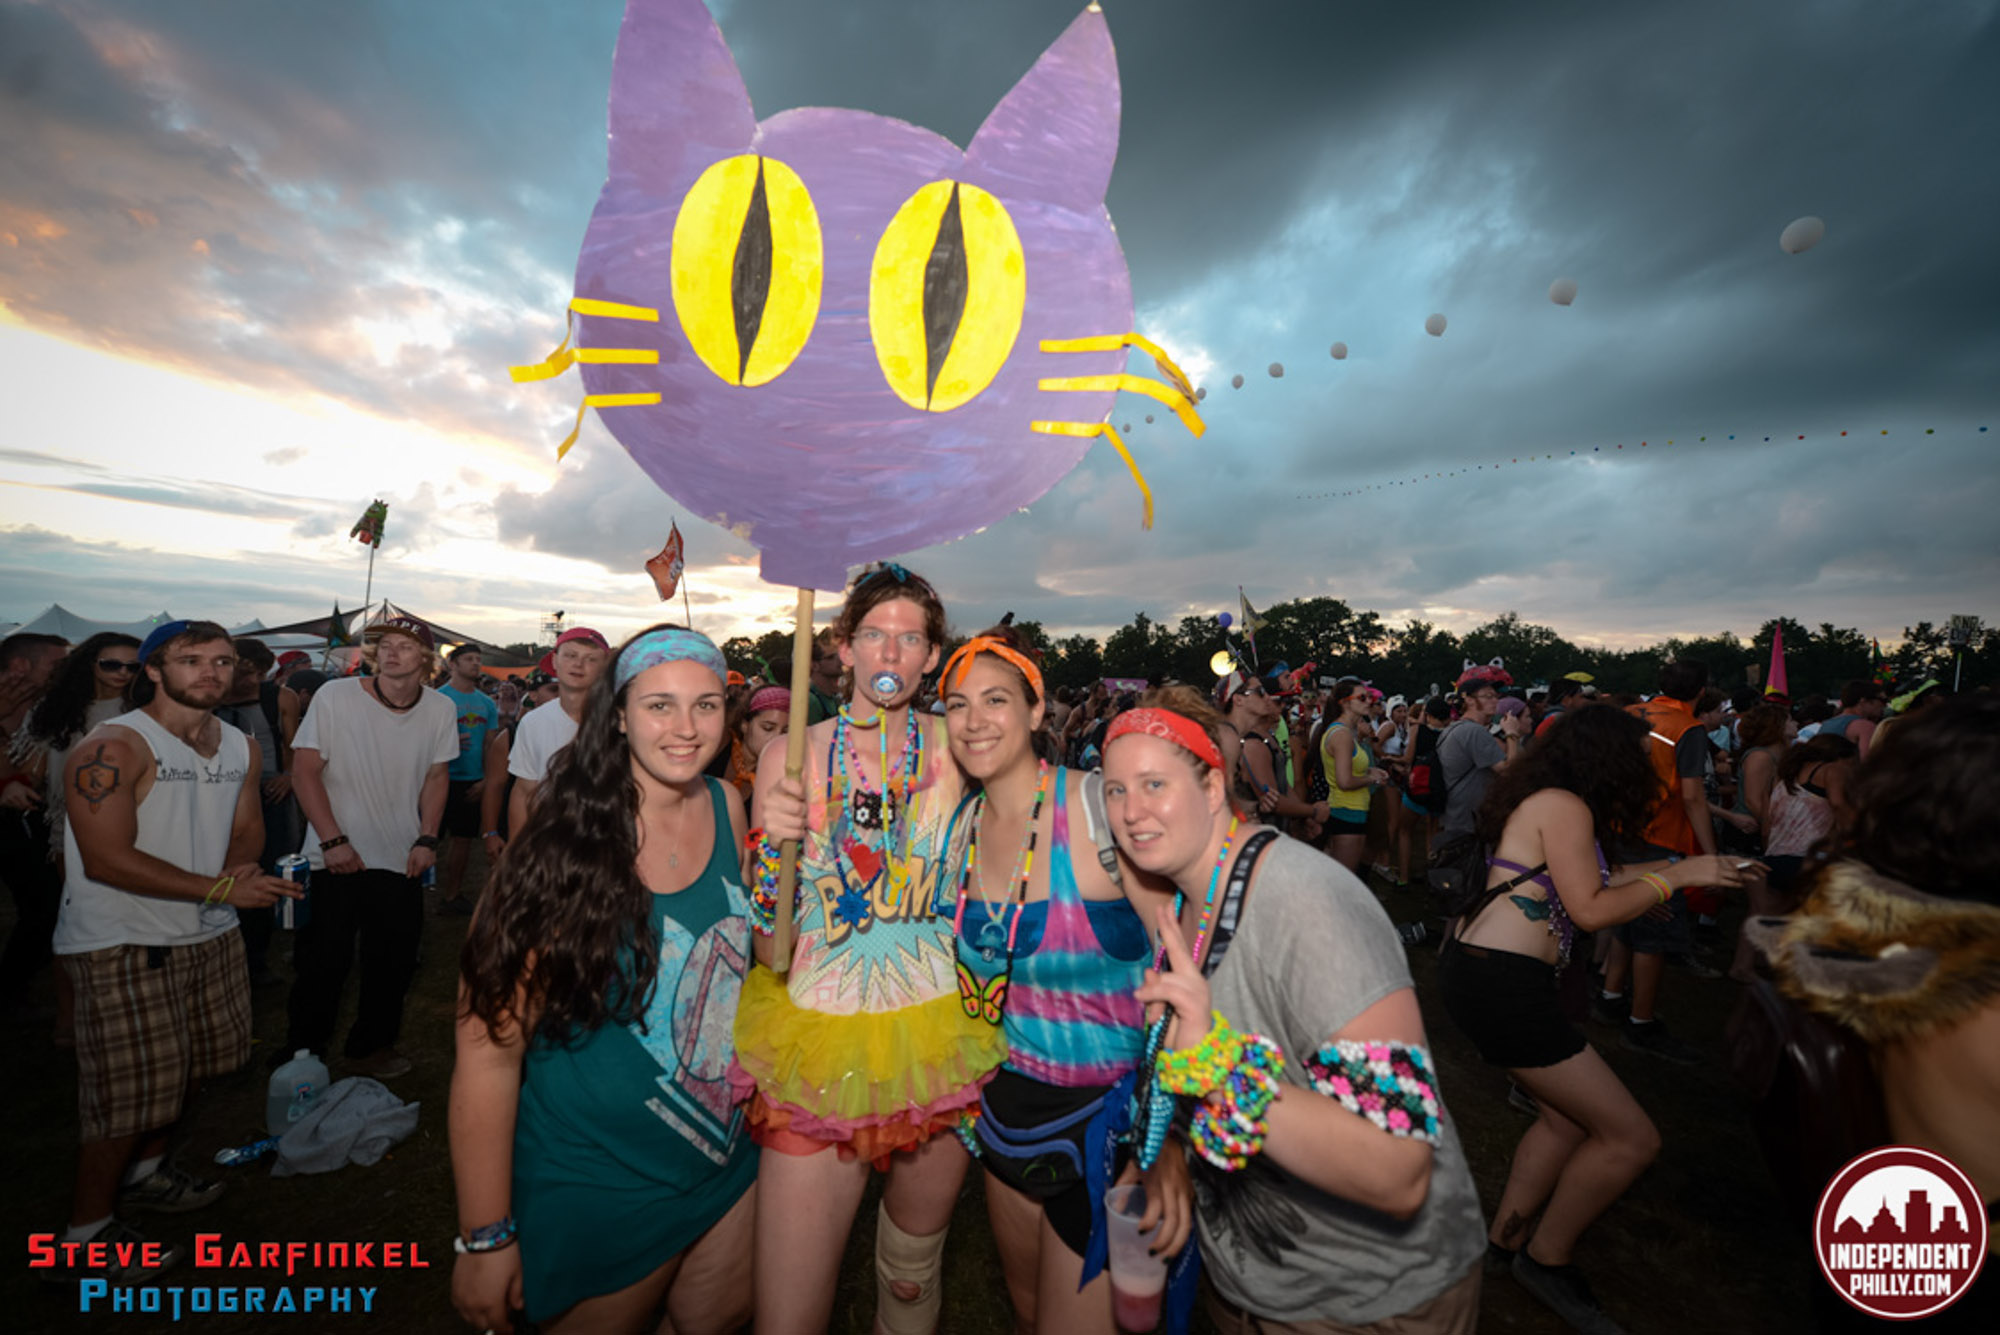 Camp_Bisco-40